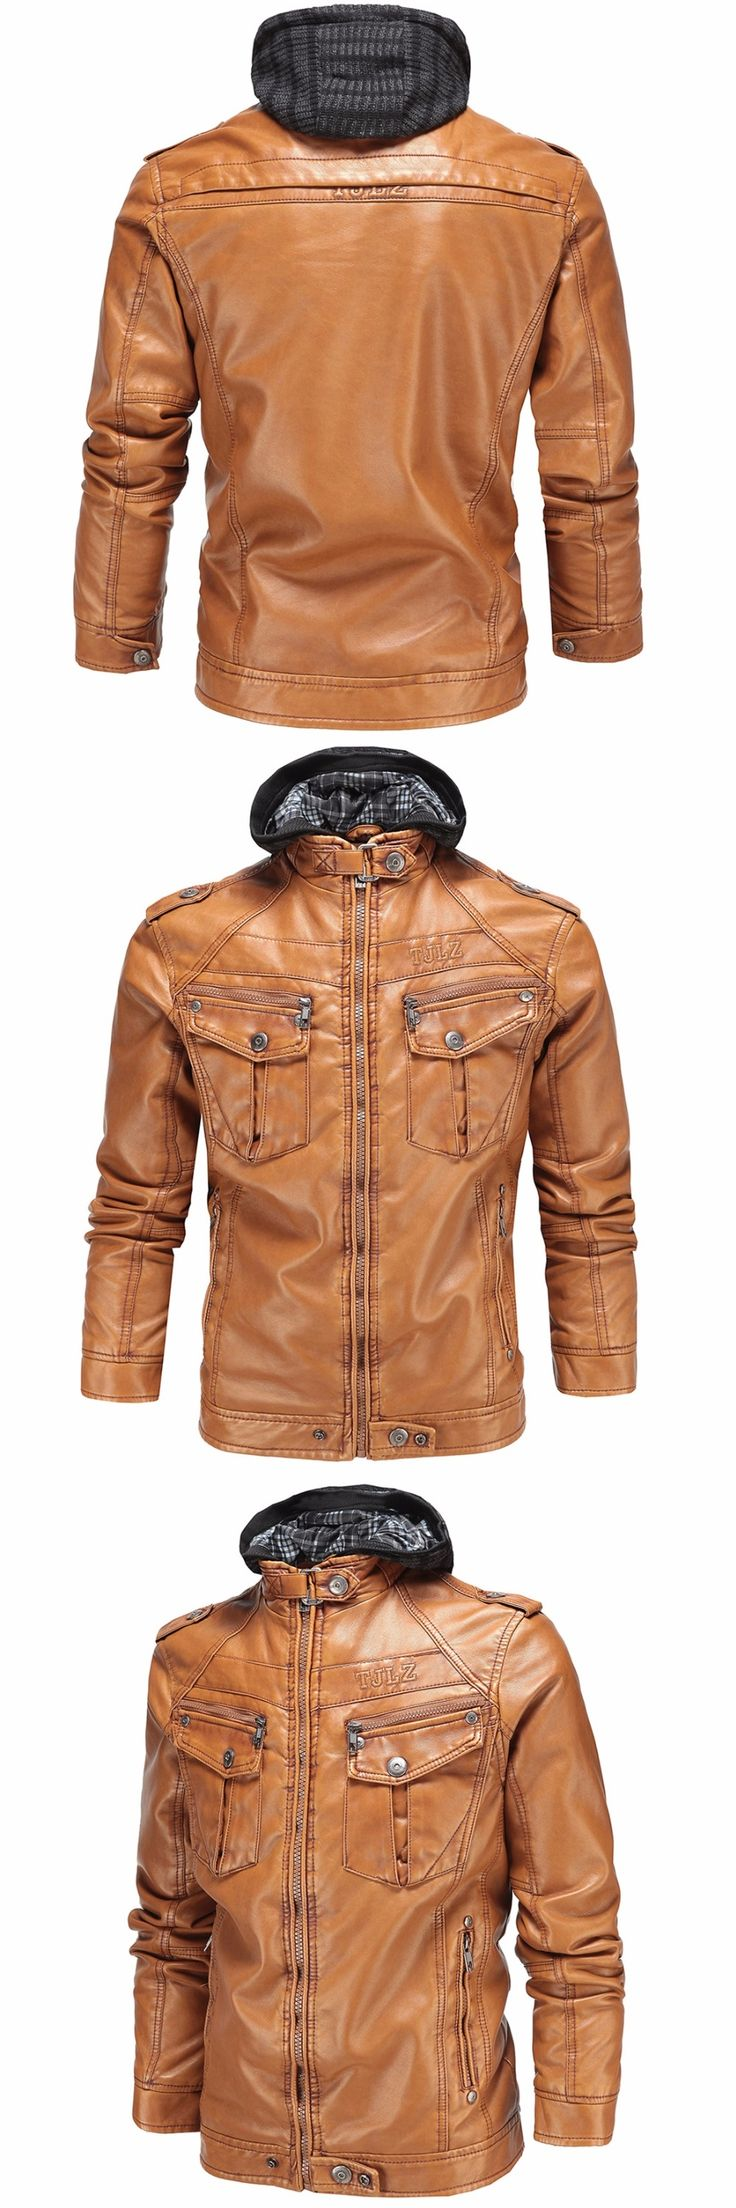 Men Winter Leather Jackets New Brand Plus Velvet Mens Casual Leather Jackets Warm Thick Coats with Hat Warm jaqueta couro